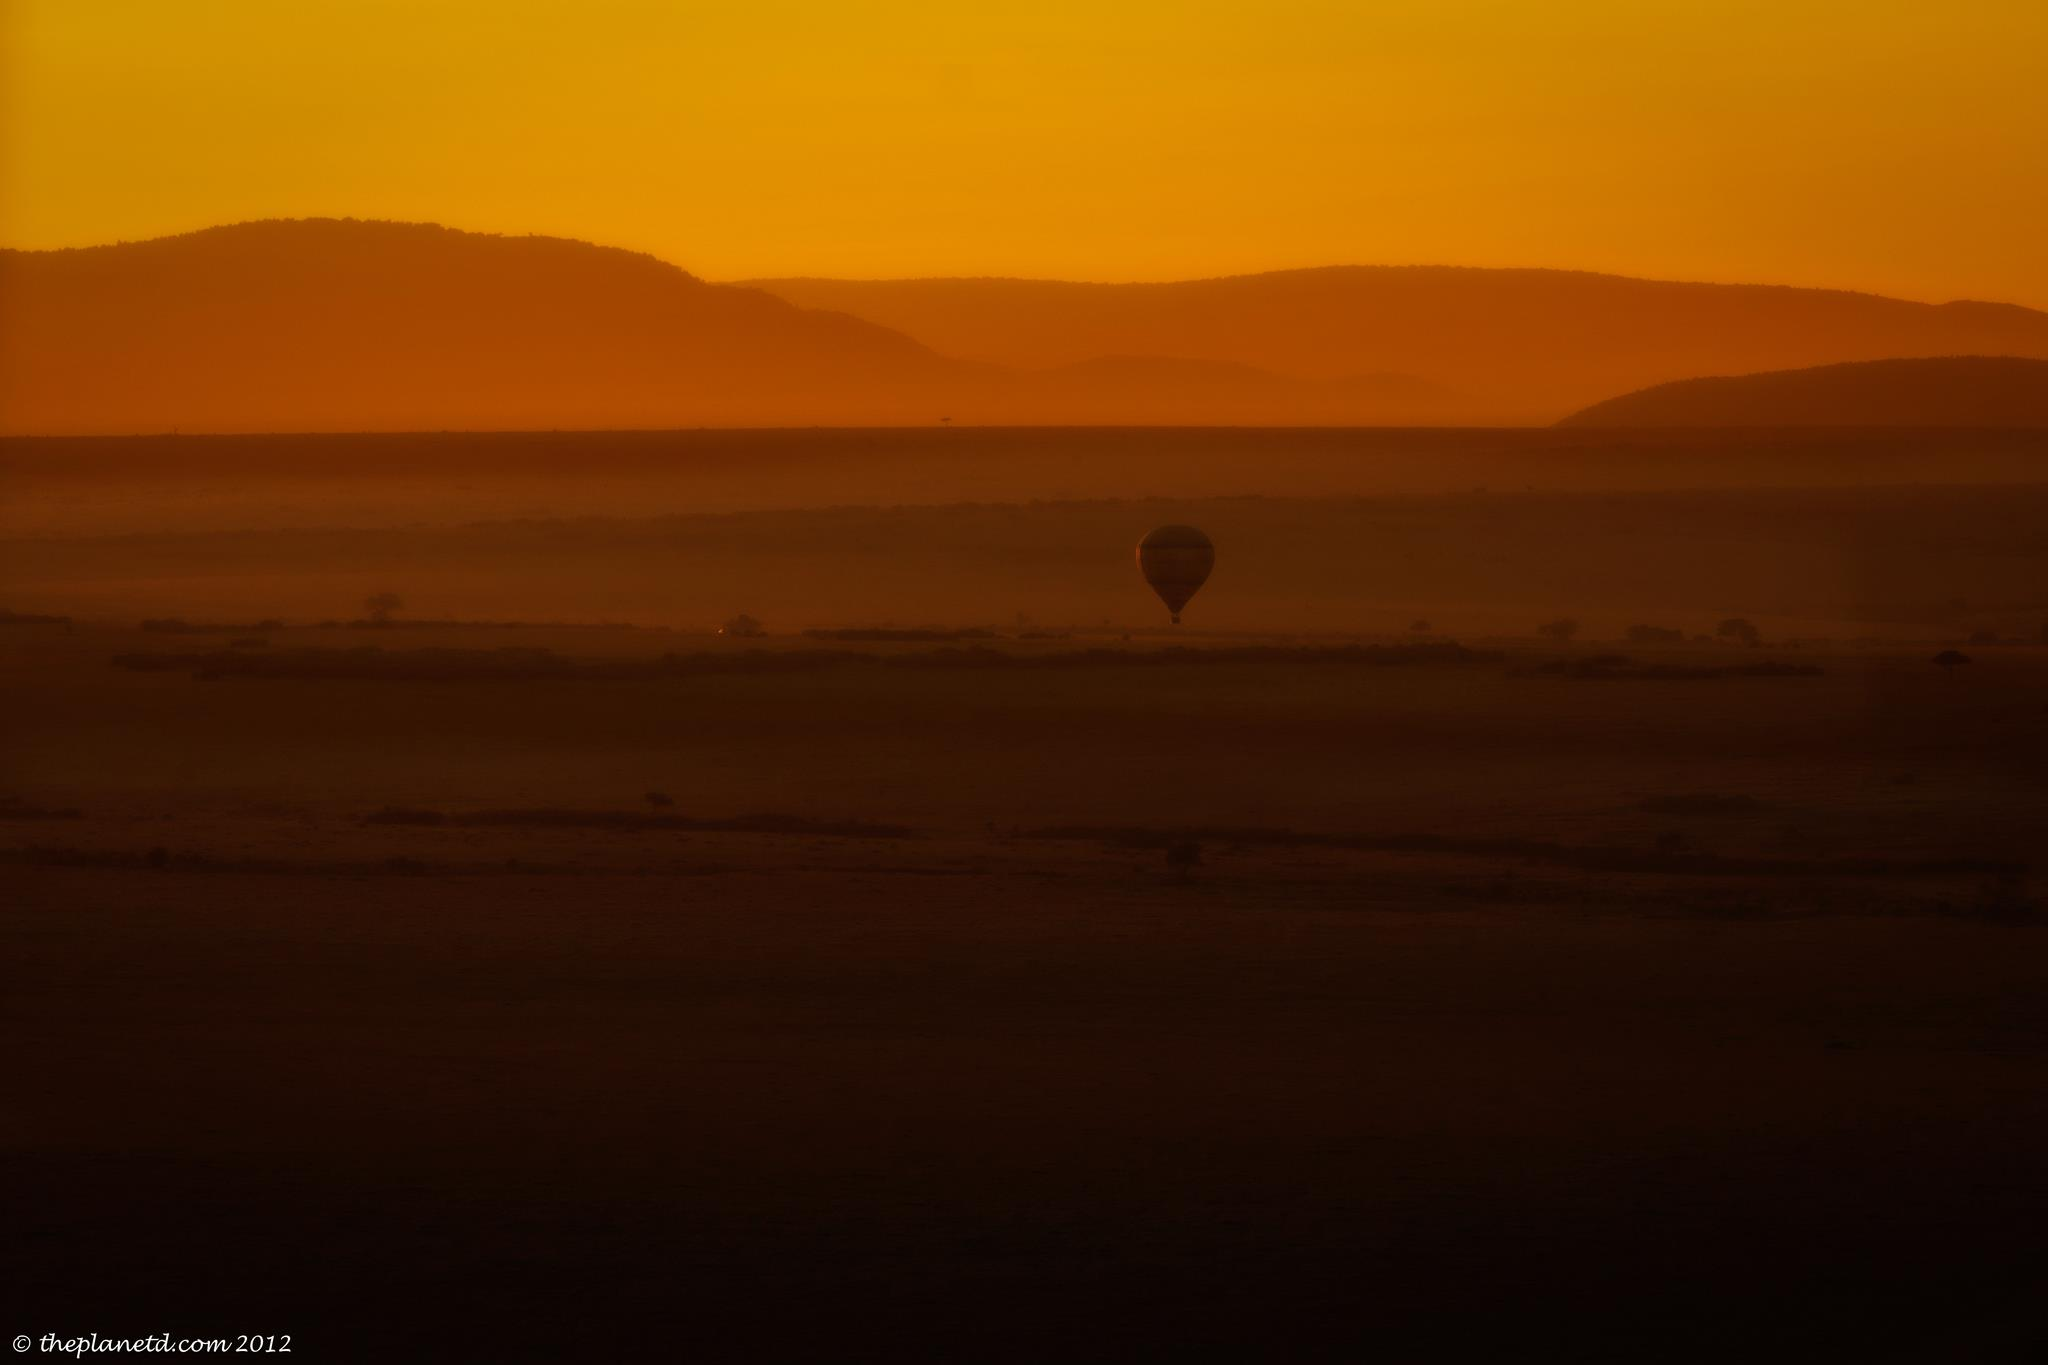 hot air balloon adventure travel